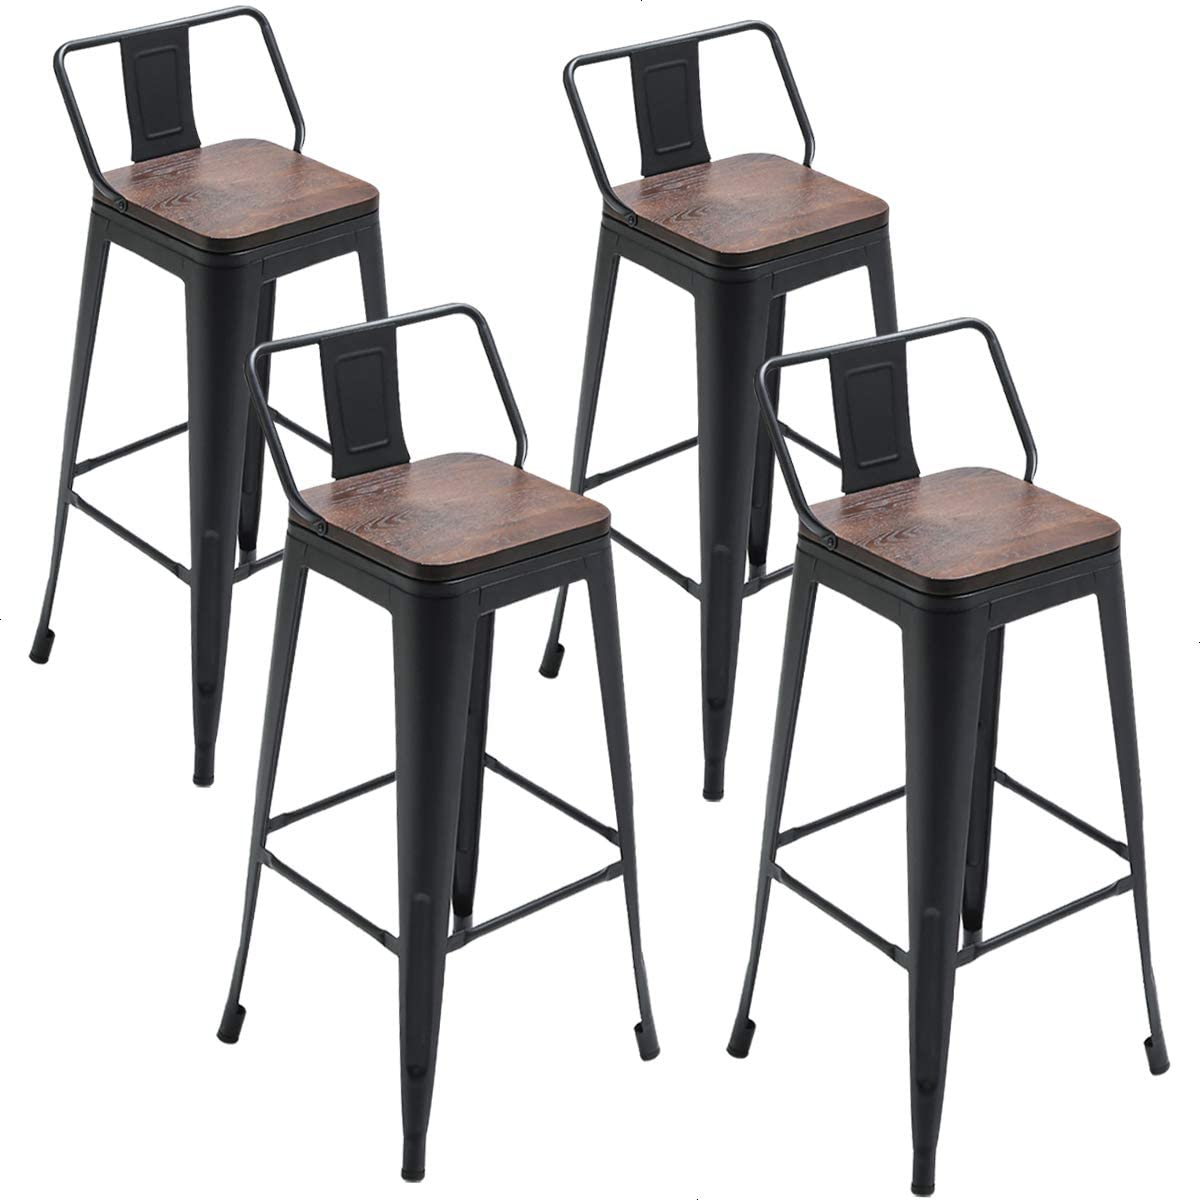 Tongli Metal Swivel Barstools Dining Chairs Set Industrial Counter Height Chair Pack of 4 Patio Chair Black Wooden Seat 30